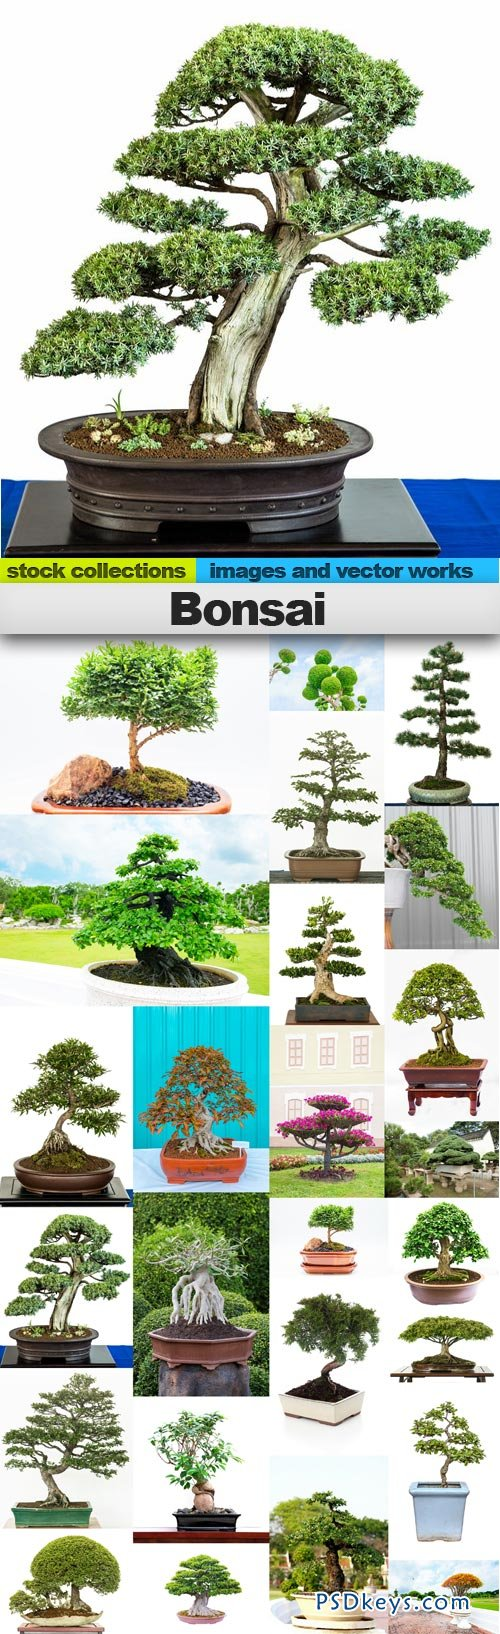 Bonsai 25xUHQ JPEG